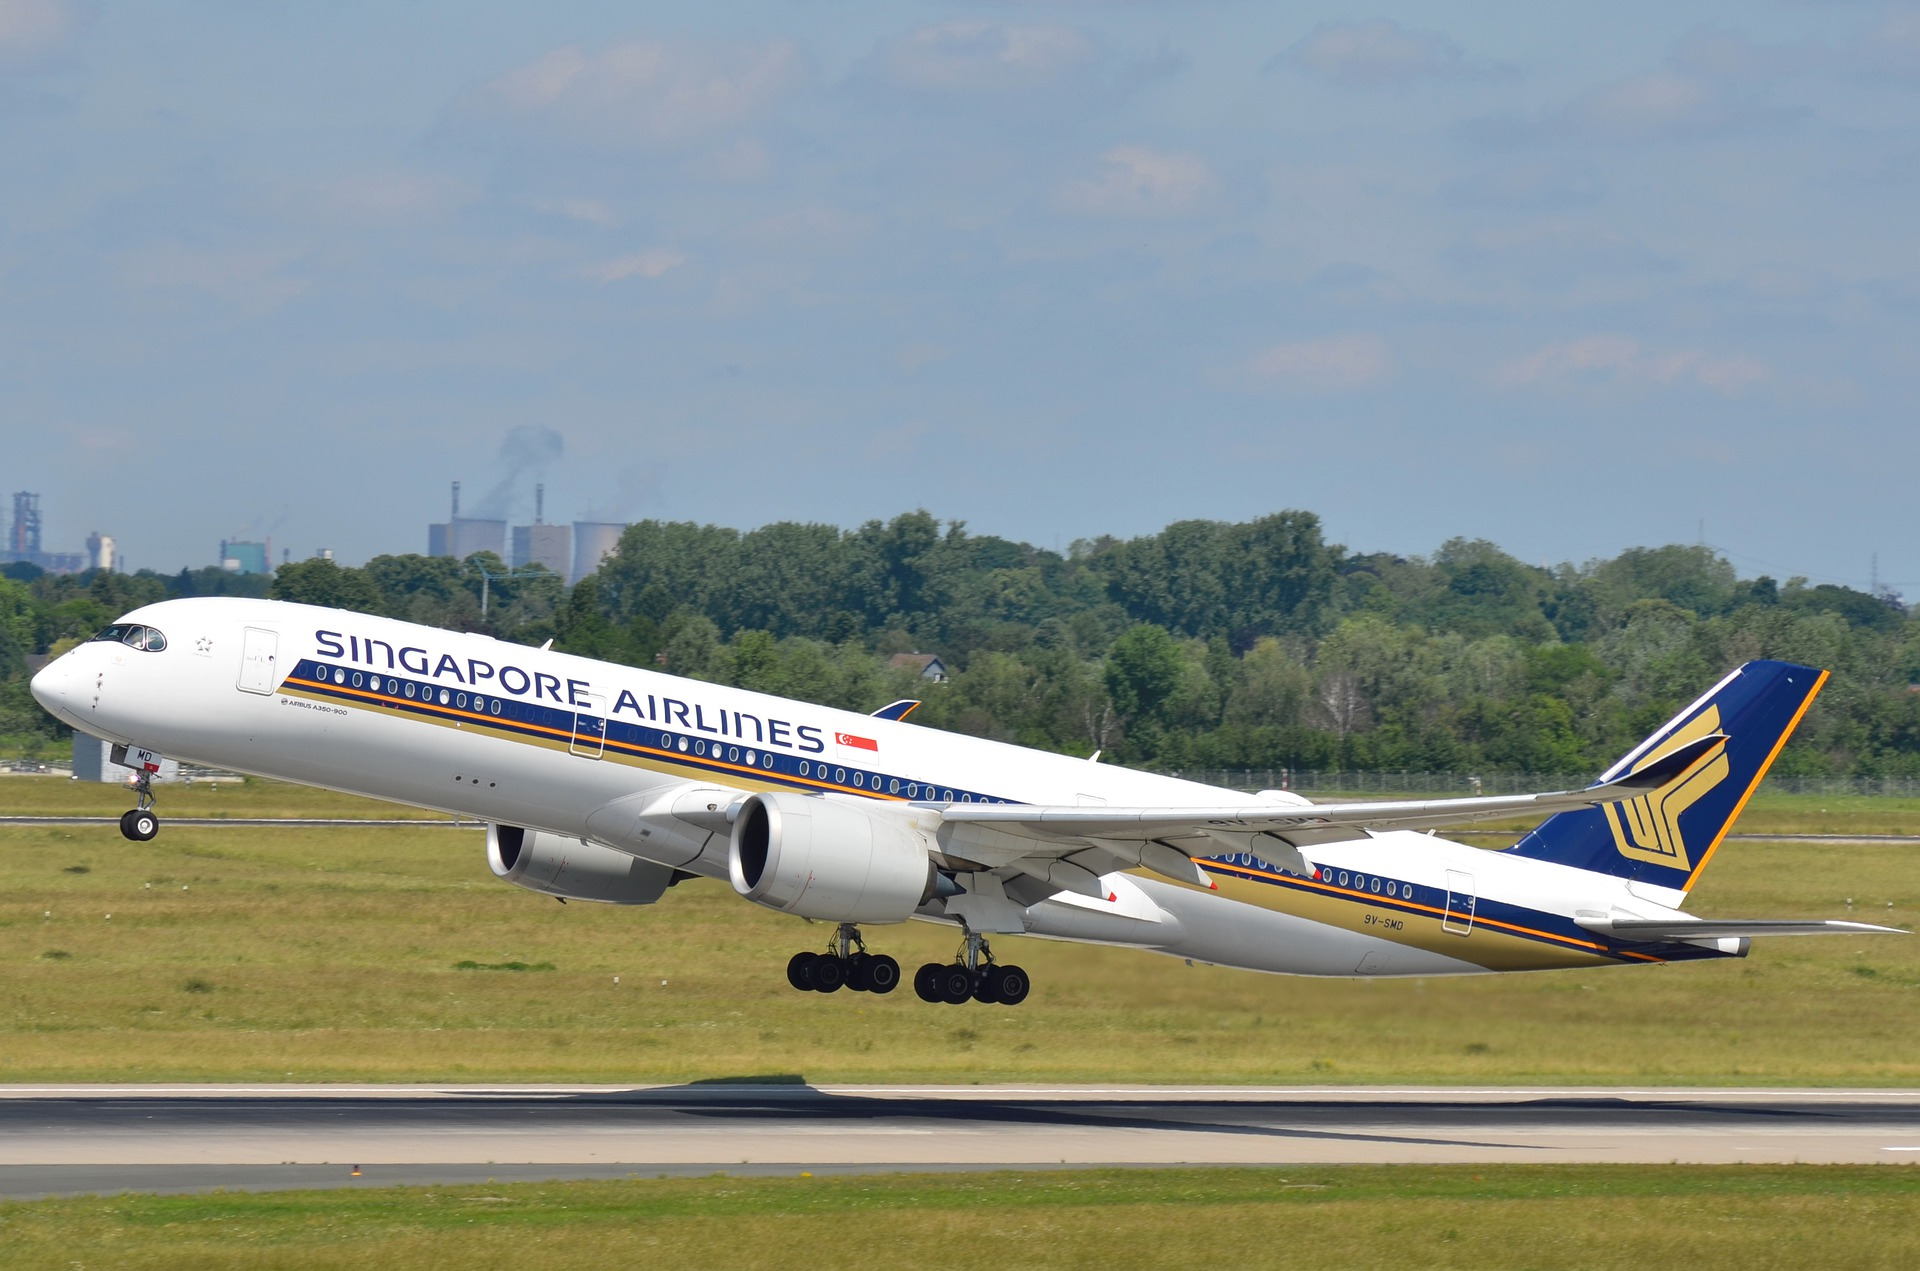 Singapore Airlines Airbus A350 taking off